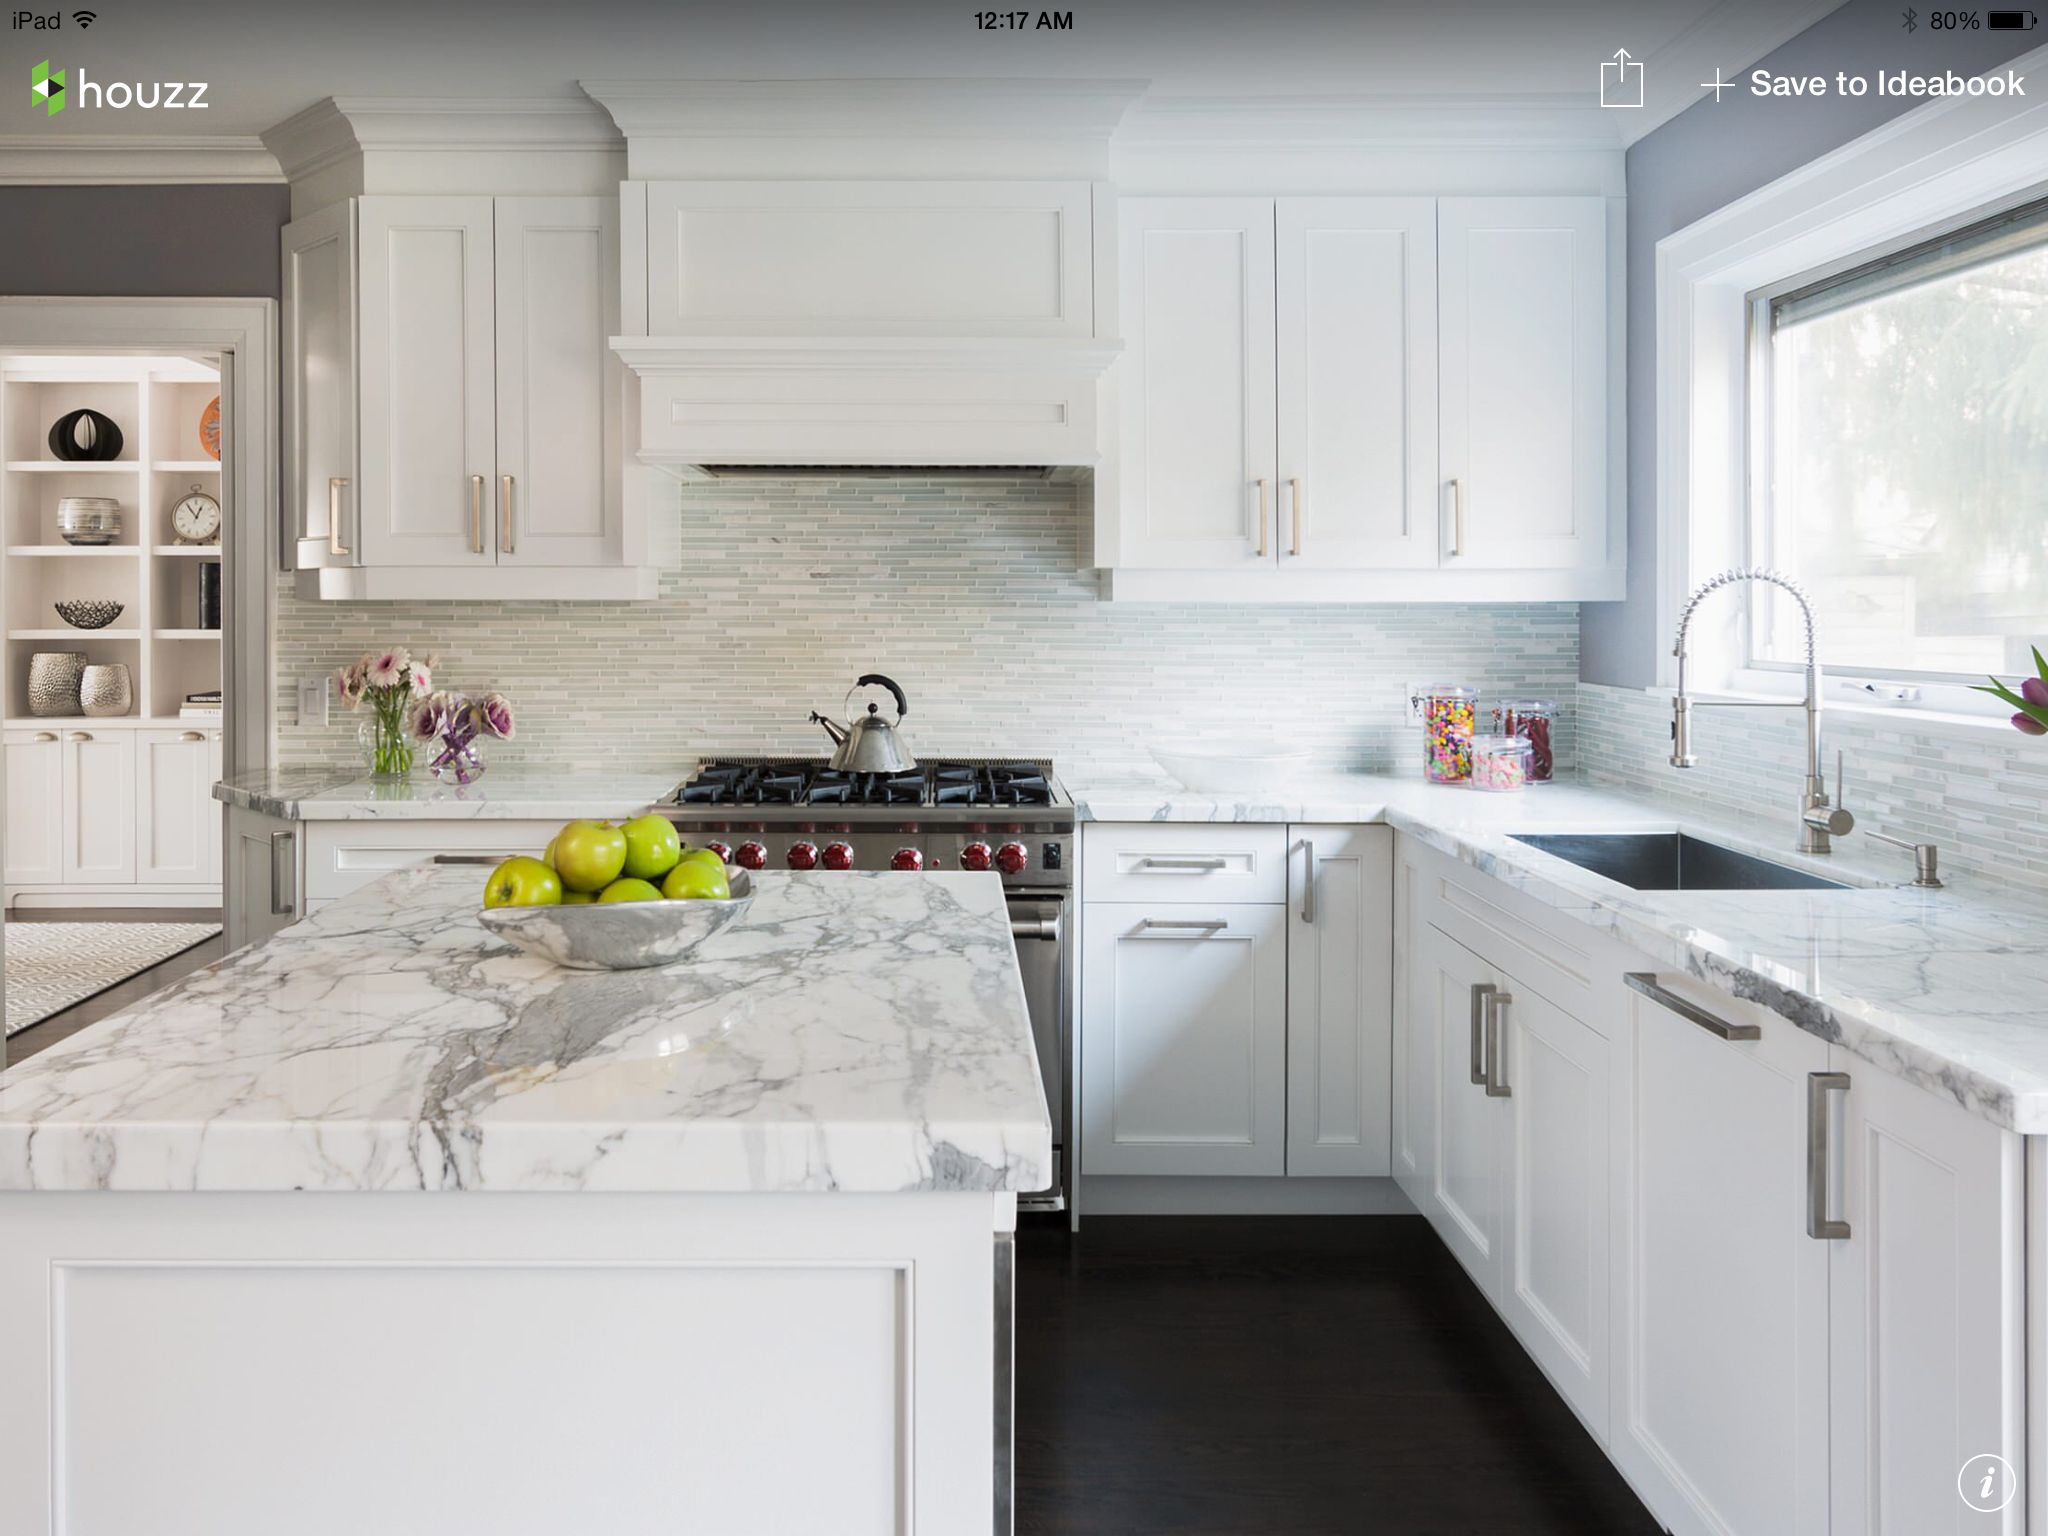 white kitchen houzz kitchen remodel in 2018 kitchen kitchen backsplash kitchen design. Black Bedroom Furniture Sets. Home Design Ideas